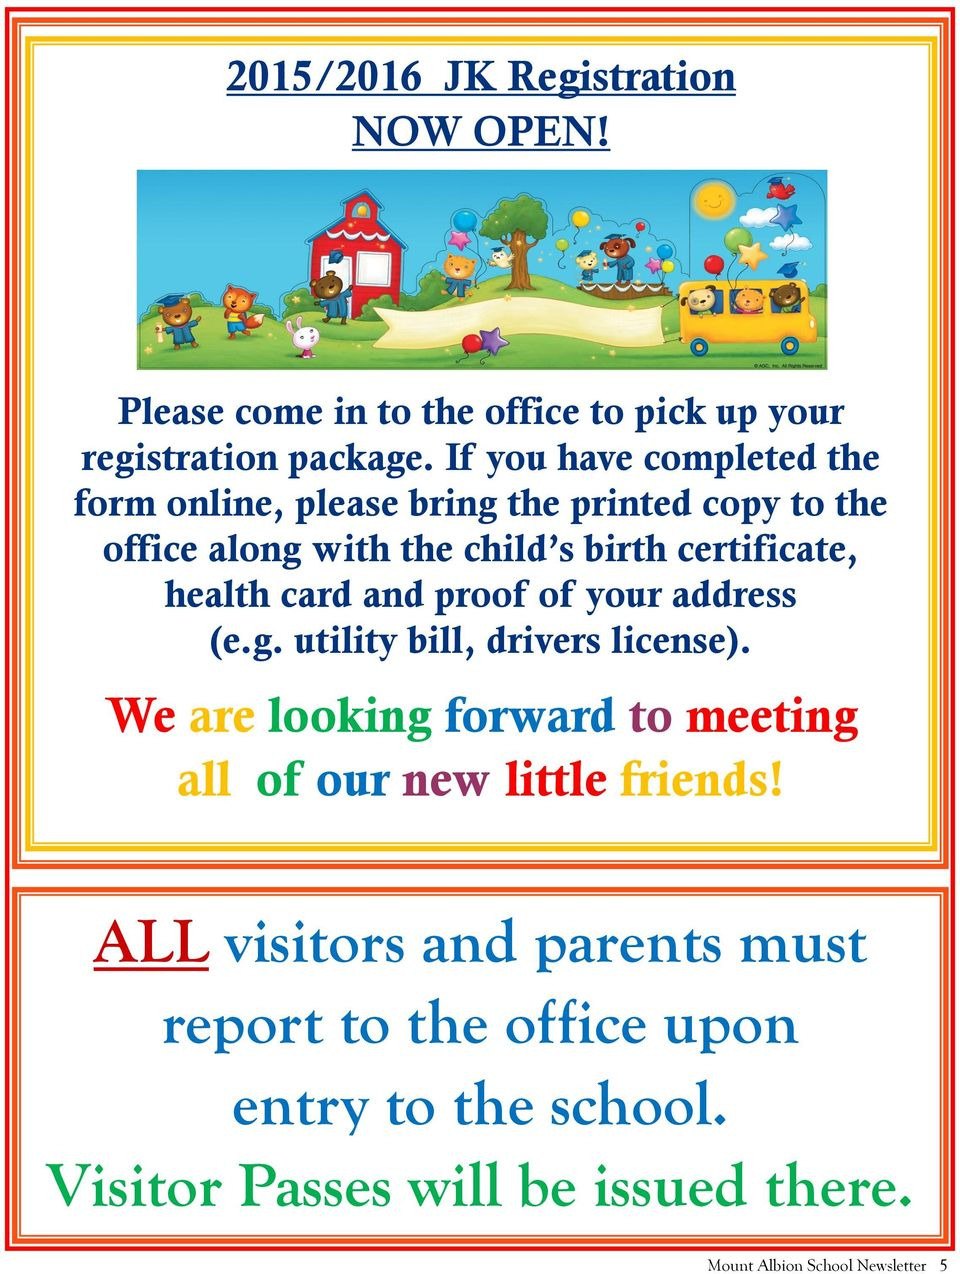 health card and proof of your address (e.g. utility bill, drivers license).